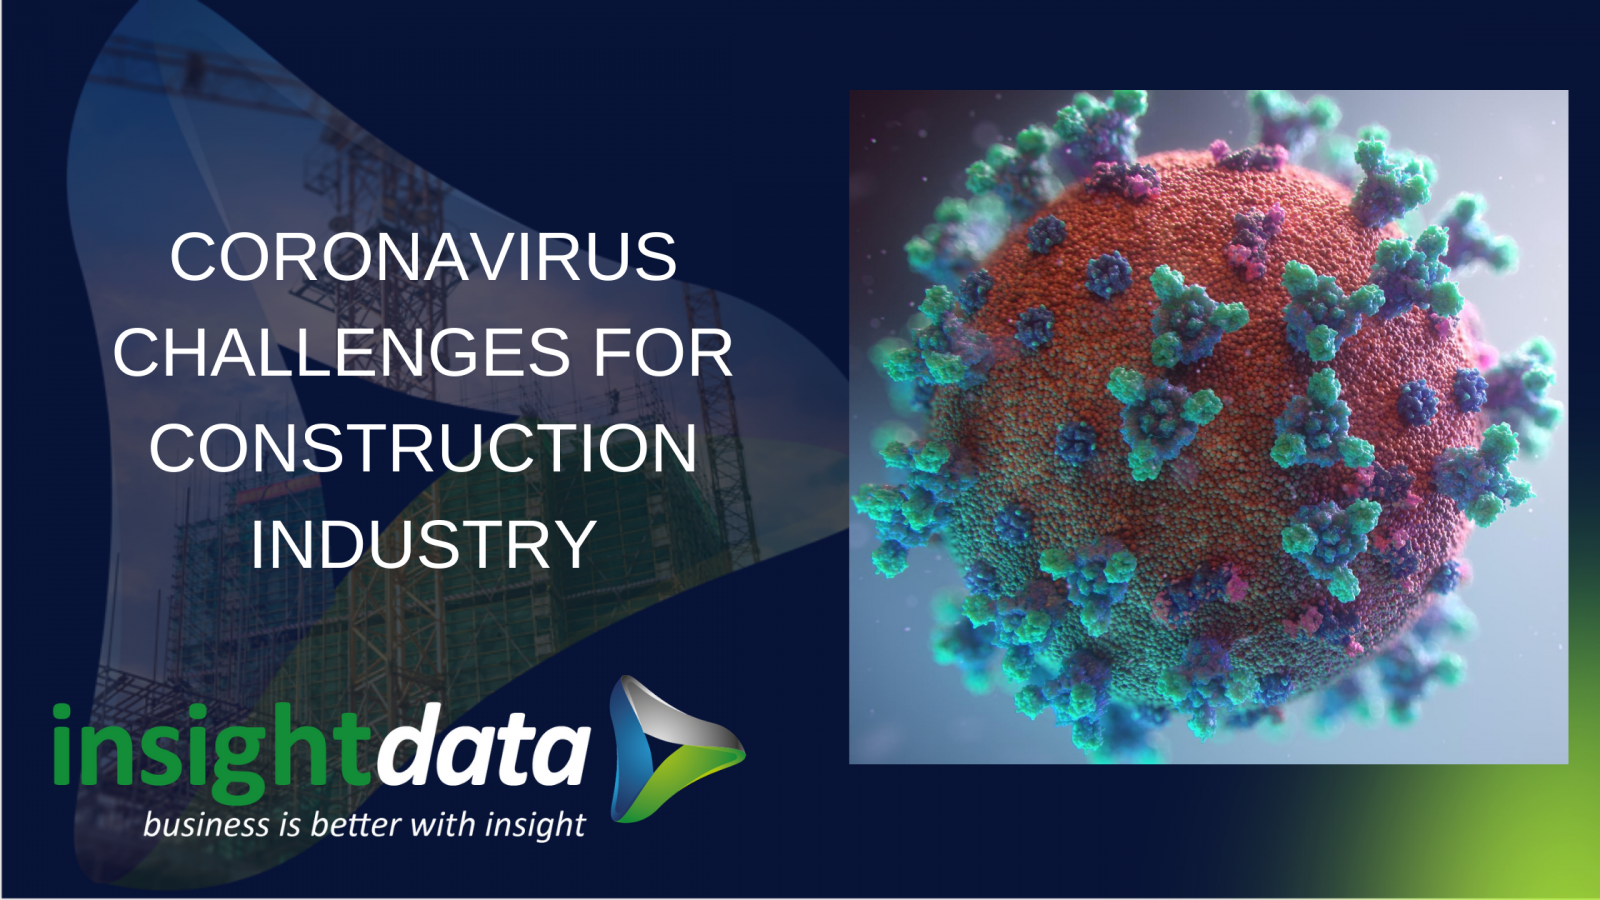 picture of coronavirus challenges for construction businesses